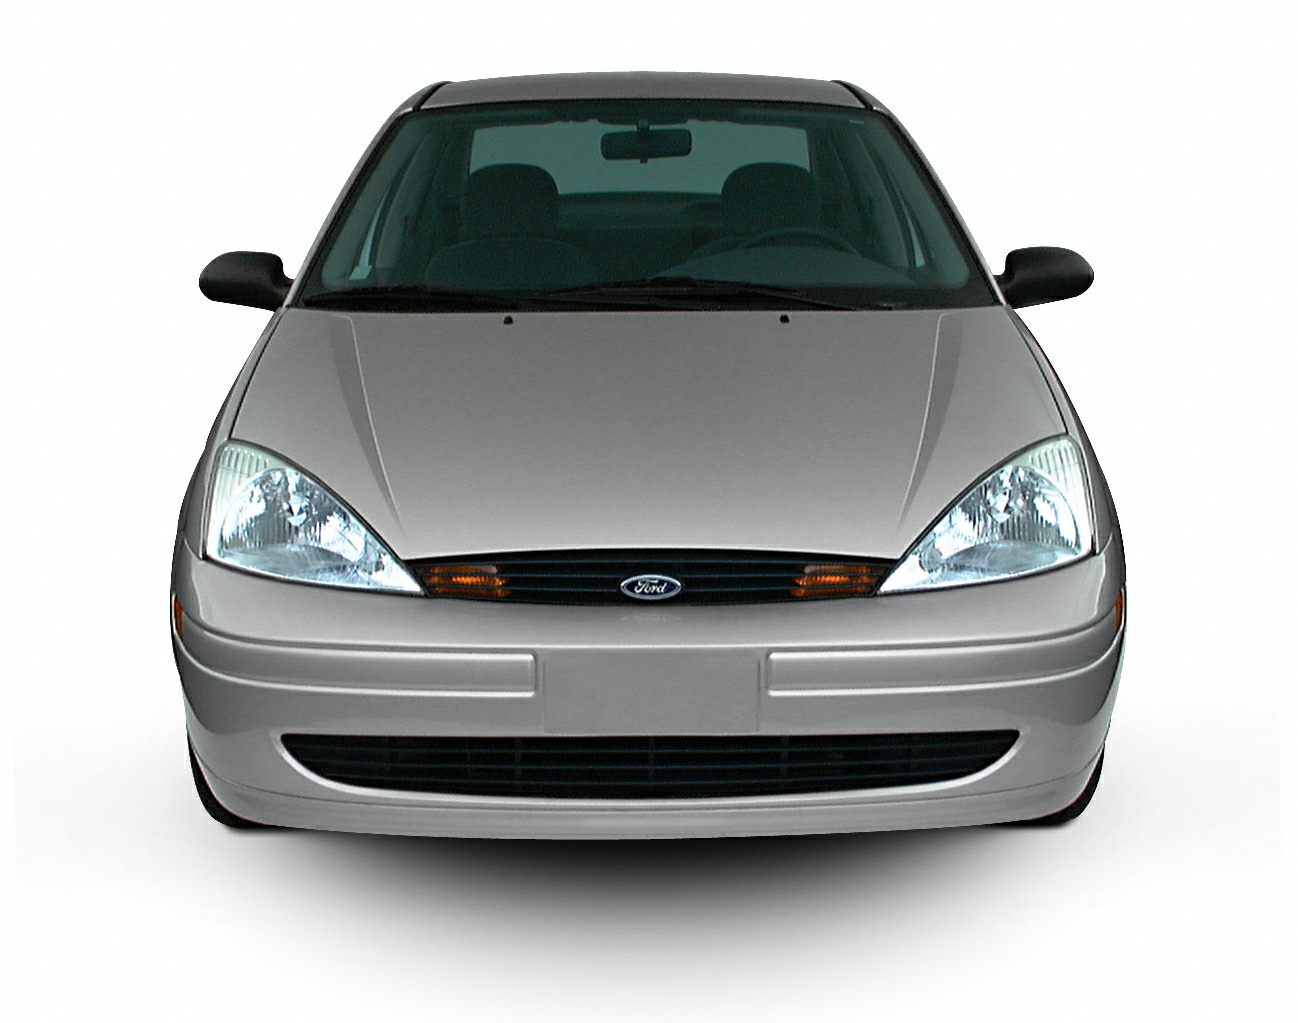 2000 ford focus lx 4dr sedan pictures. Black Bedroom Furniture Sets. Home Design Ideas